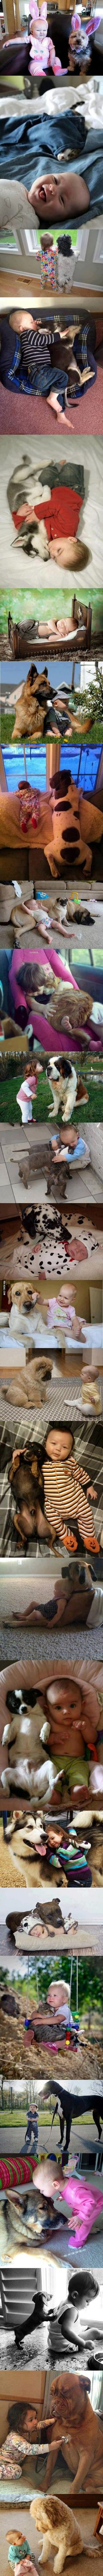 Why kids need pets. Love!